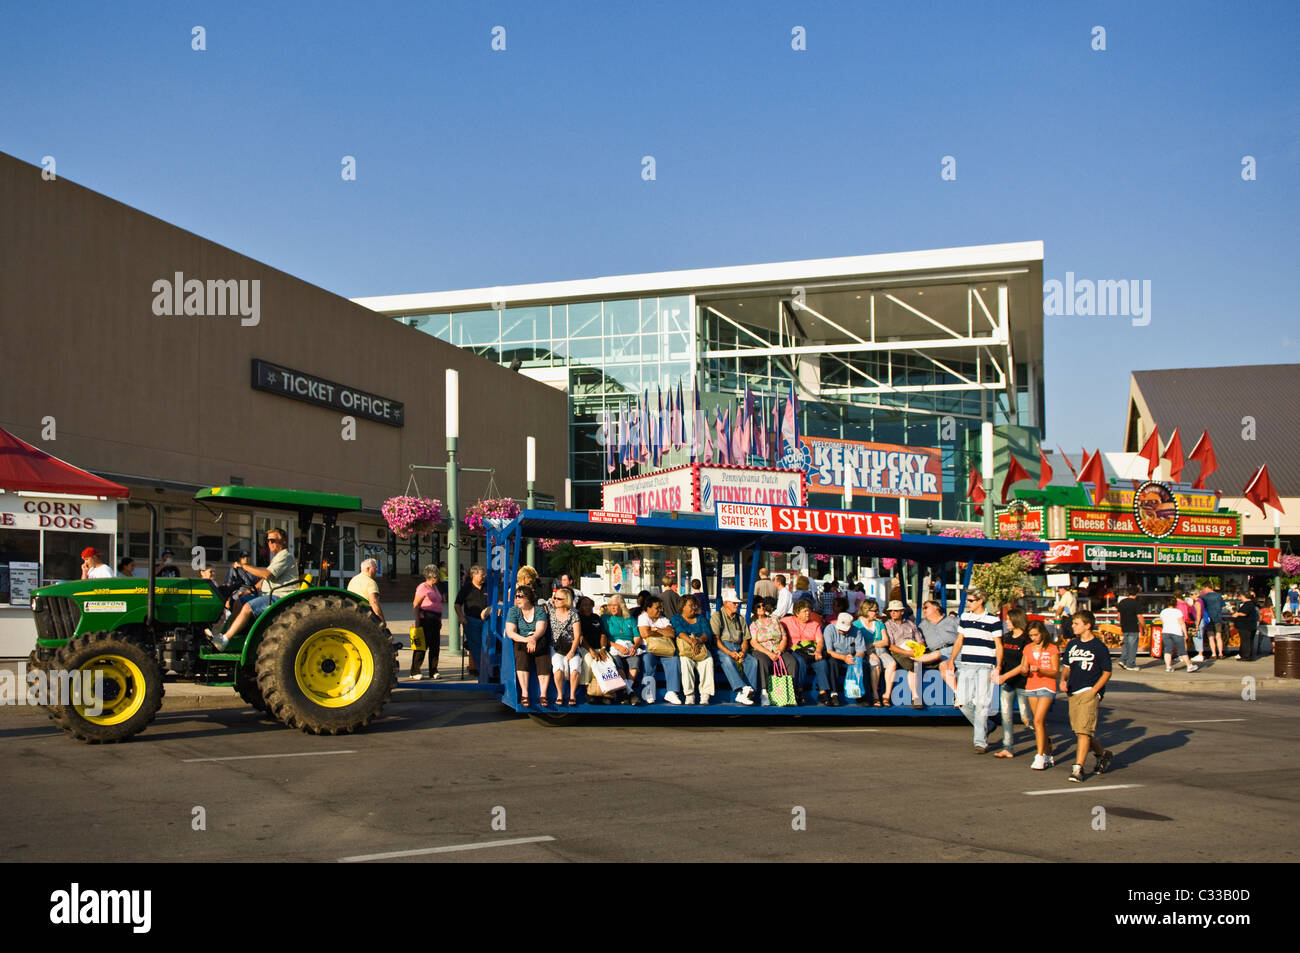 Shuttle Carrying Visitors to the 2009 Kentucky State Fair in Louisville, Kentucky - Stock Image